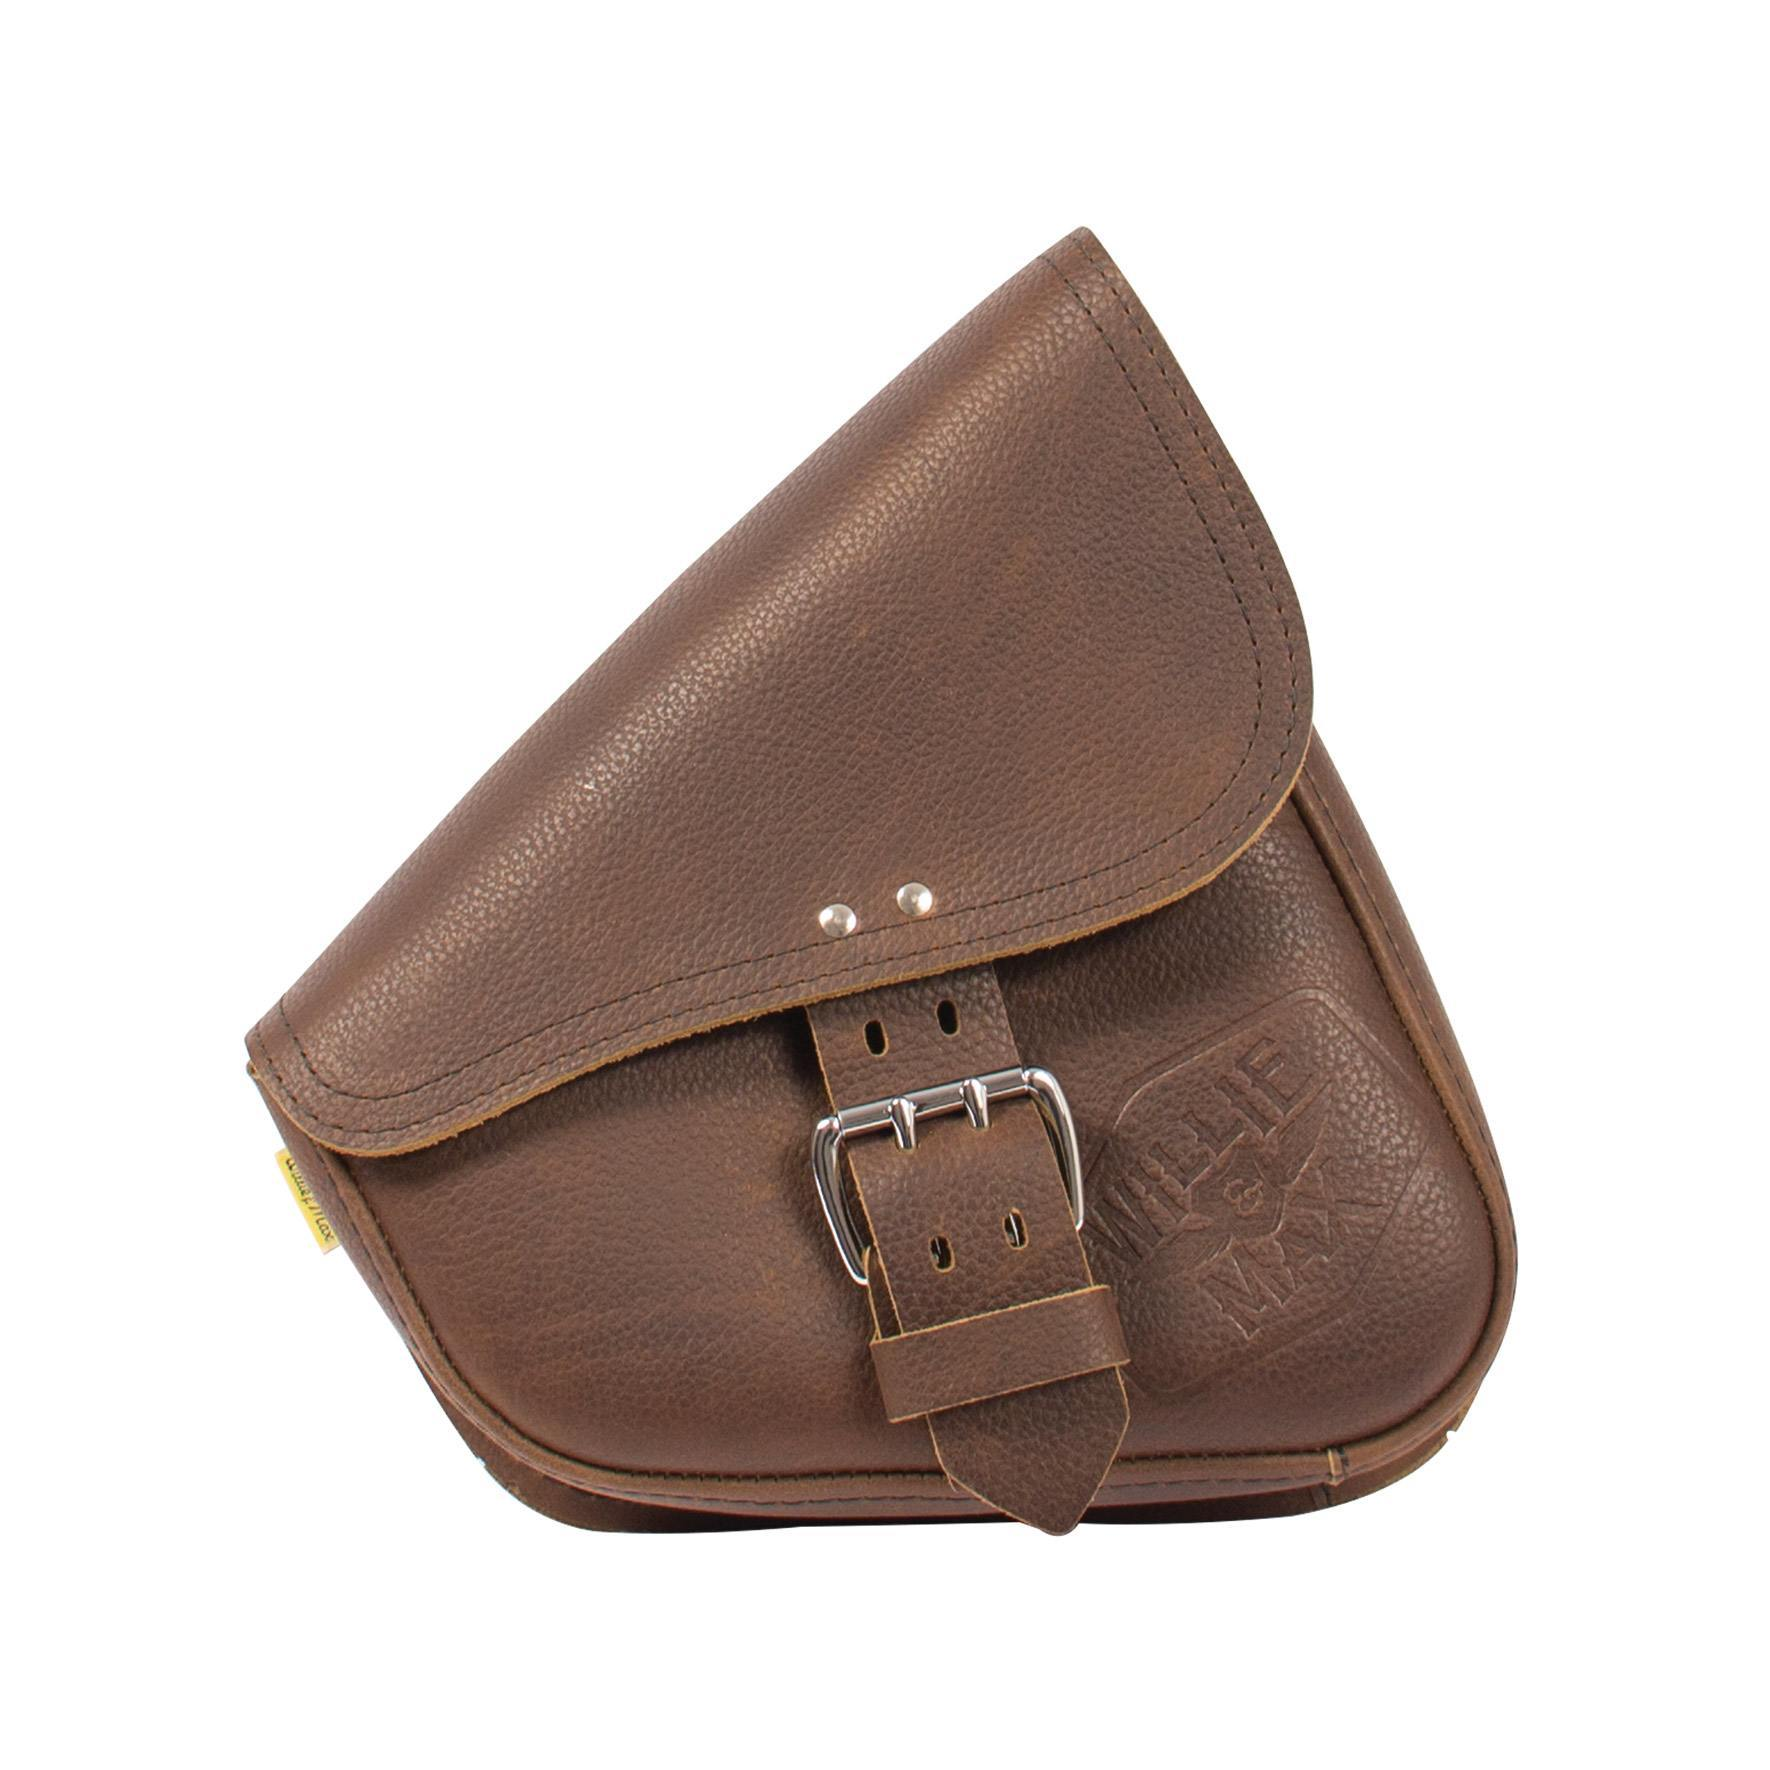 Willie & Max Limited Edition Brown Leather Swingarm Bag - Dual Shock Front View